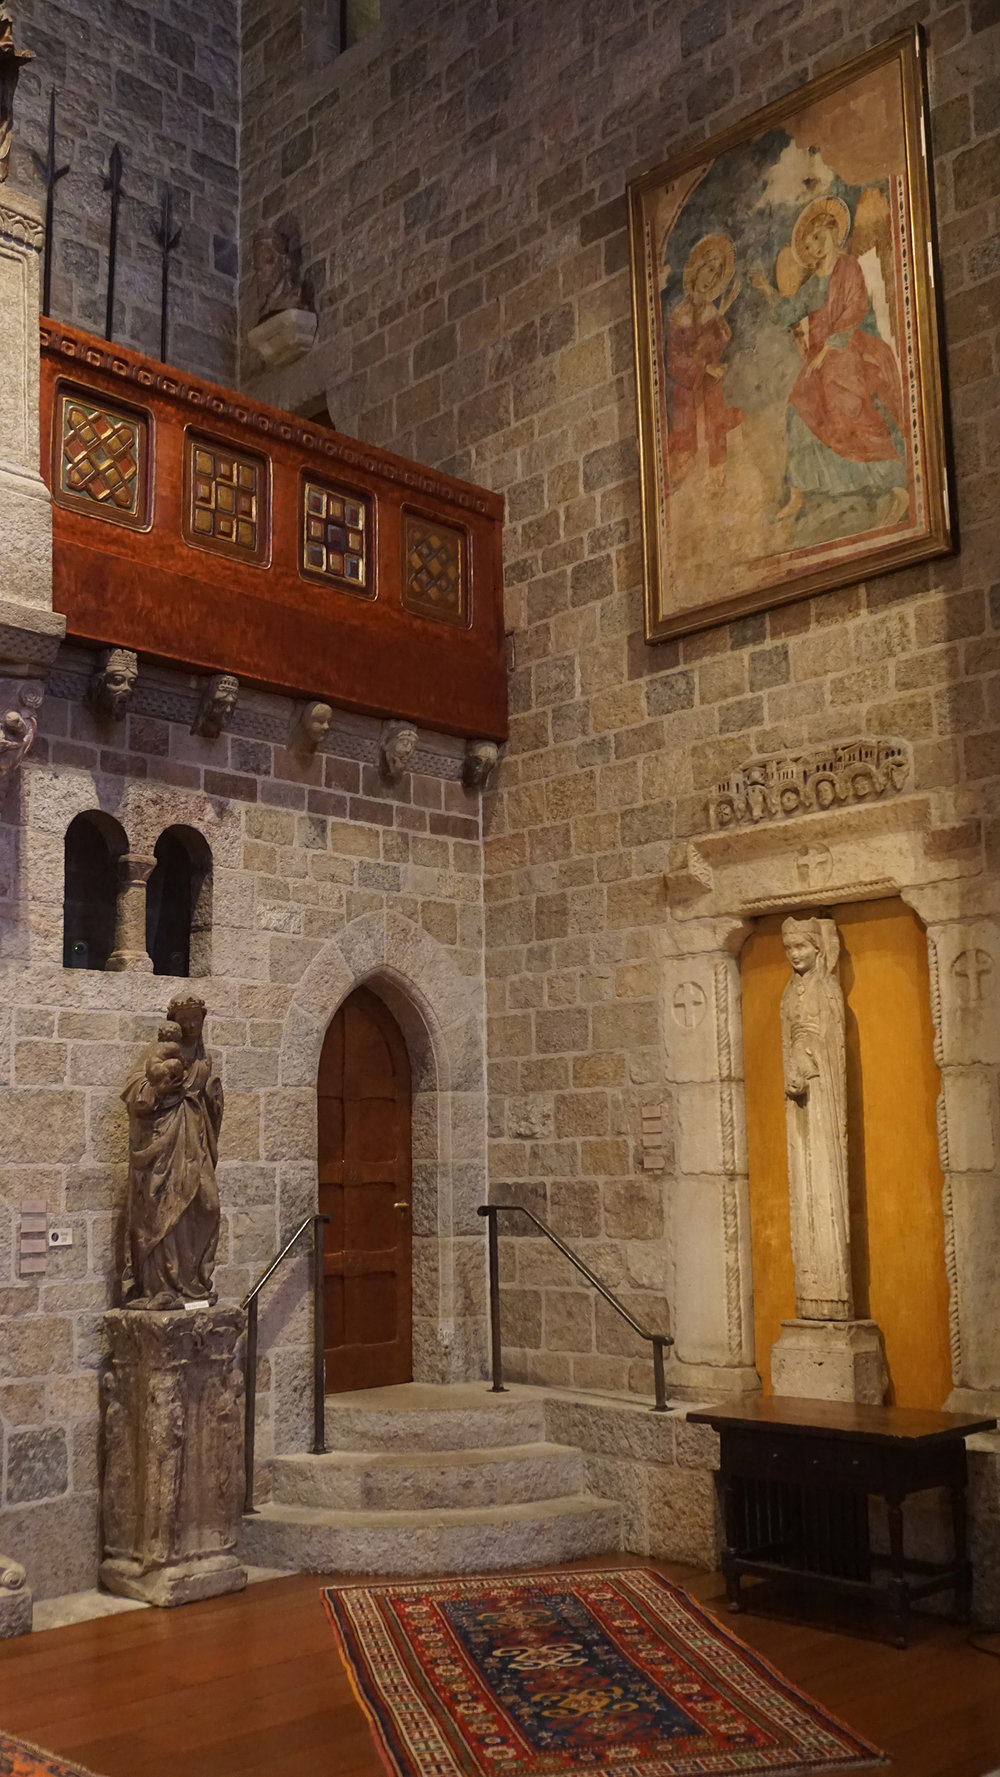 Figure 9: Queen statue-column conglomeration, Great Hall, Glencairn Museum, Bryn Athyn, Pennsylvania. Photo: Glencairn Museum.